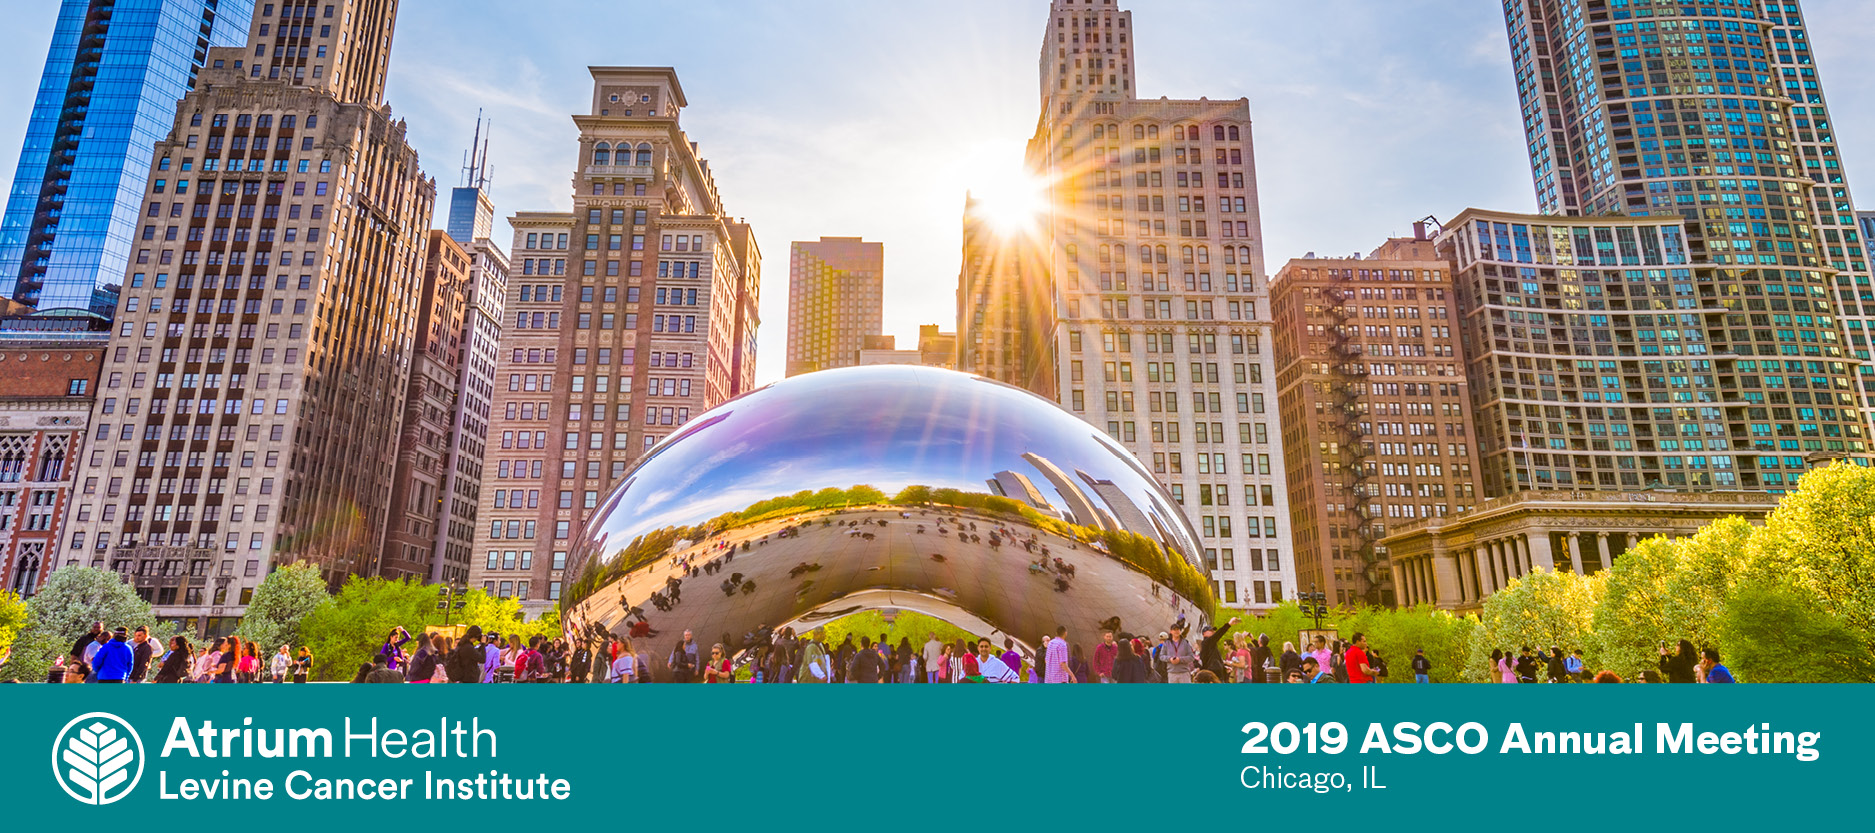 The 2019 American Society of Clinical Oncology (ASCO) Annual Meeting is the world